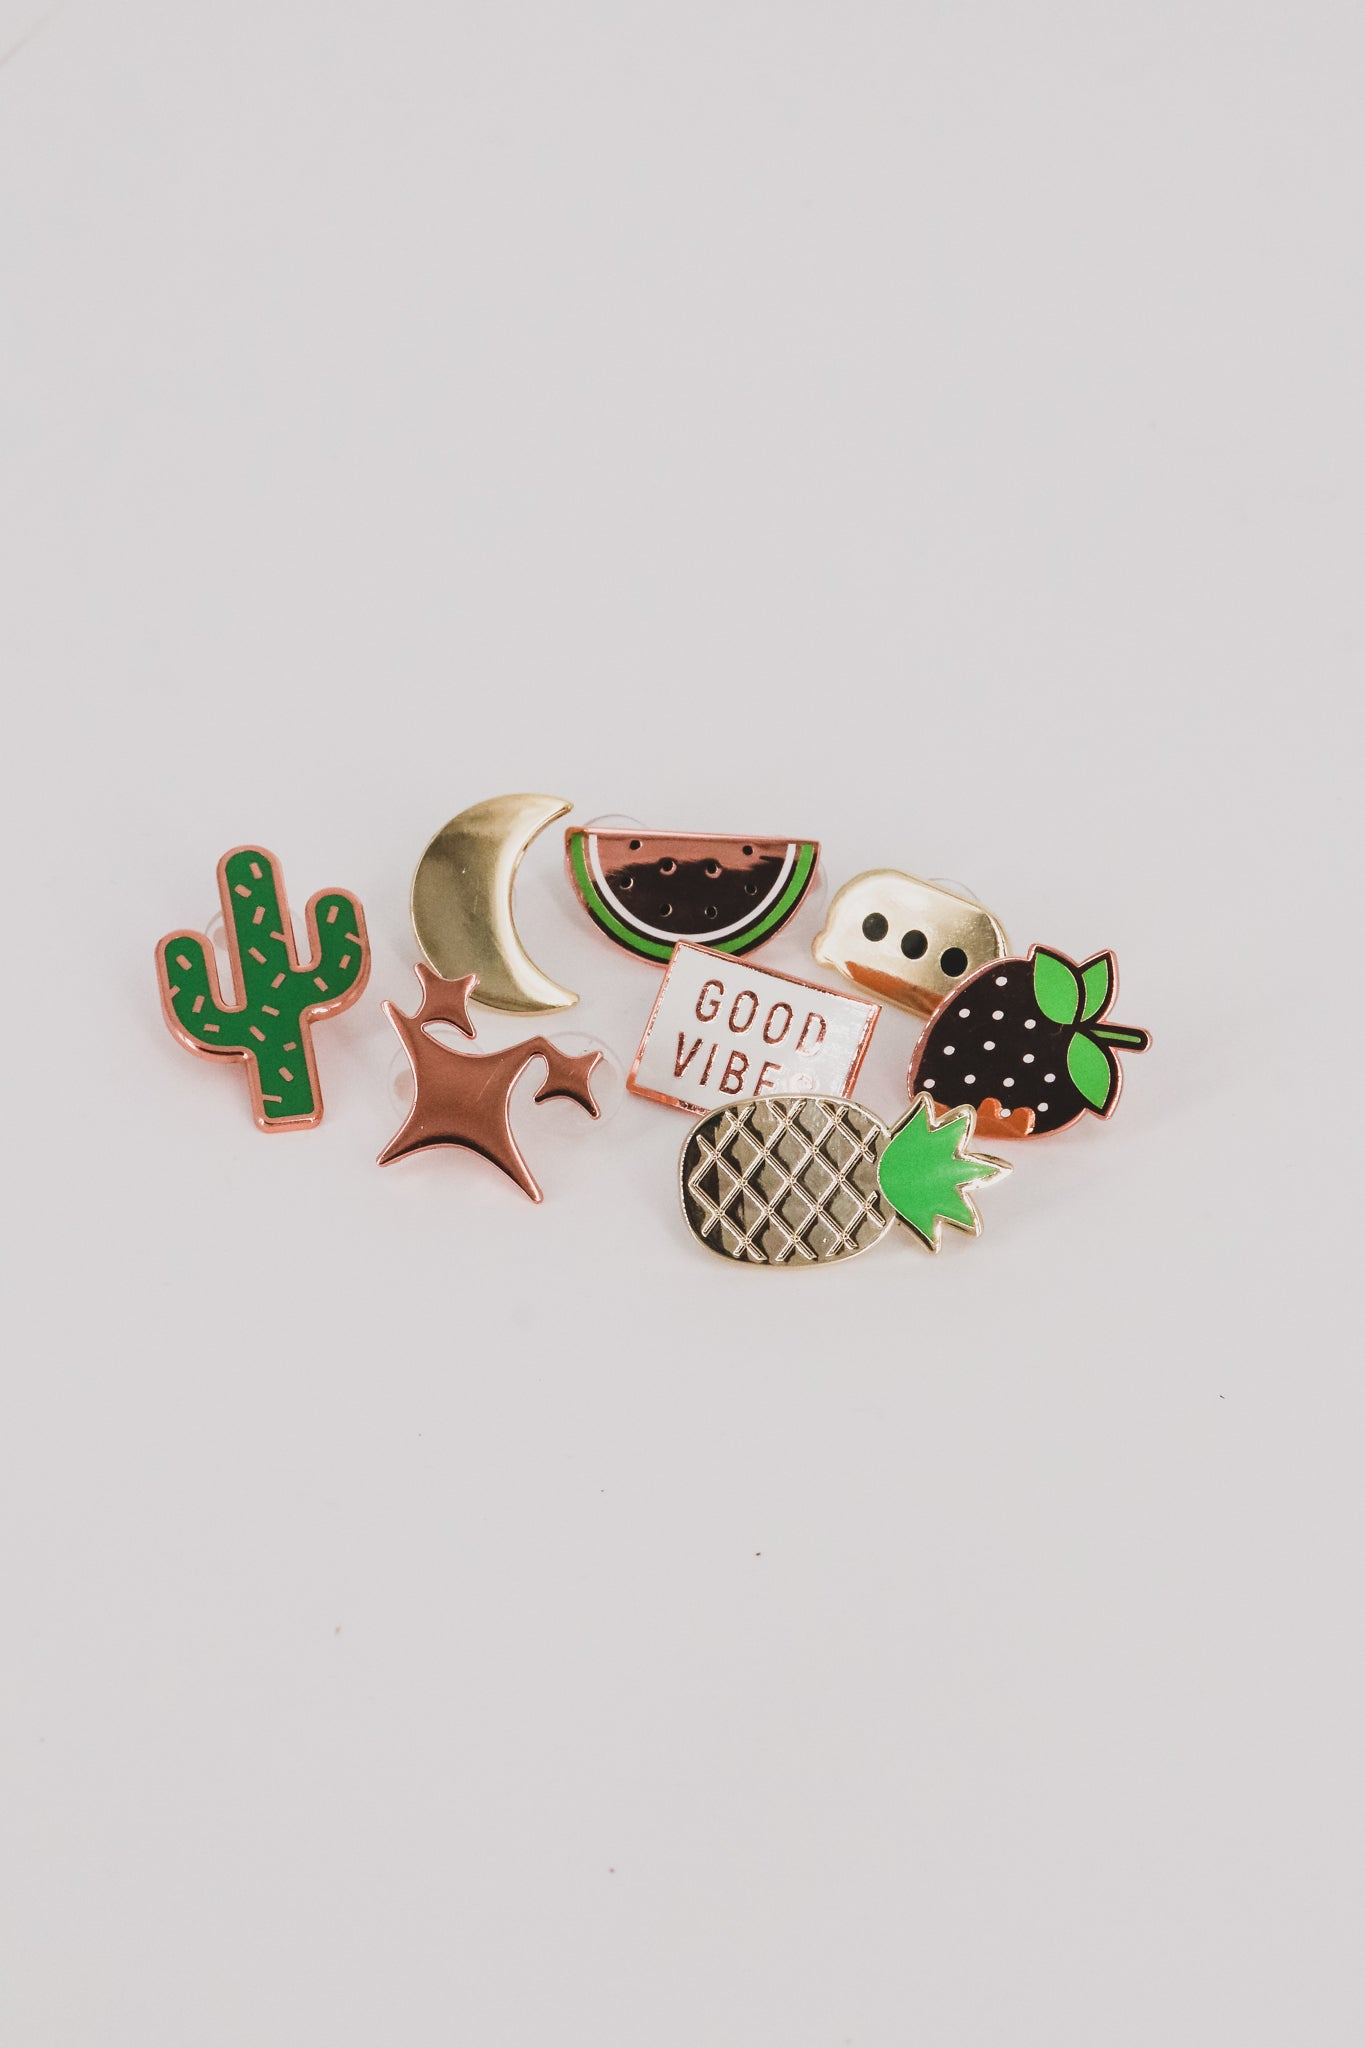 Oh So Cute Pin 1 - JQ Clothing Co. - Oakes, ND